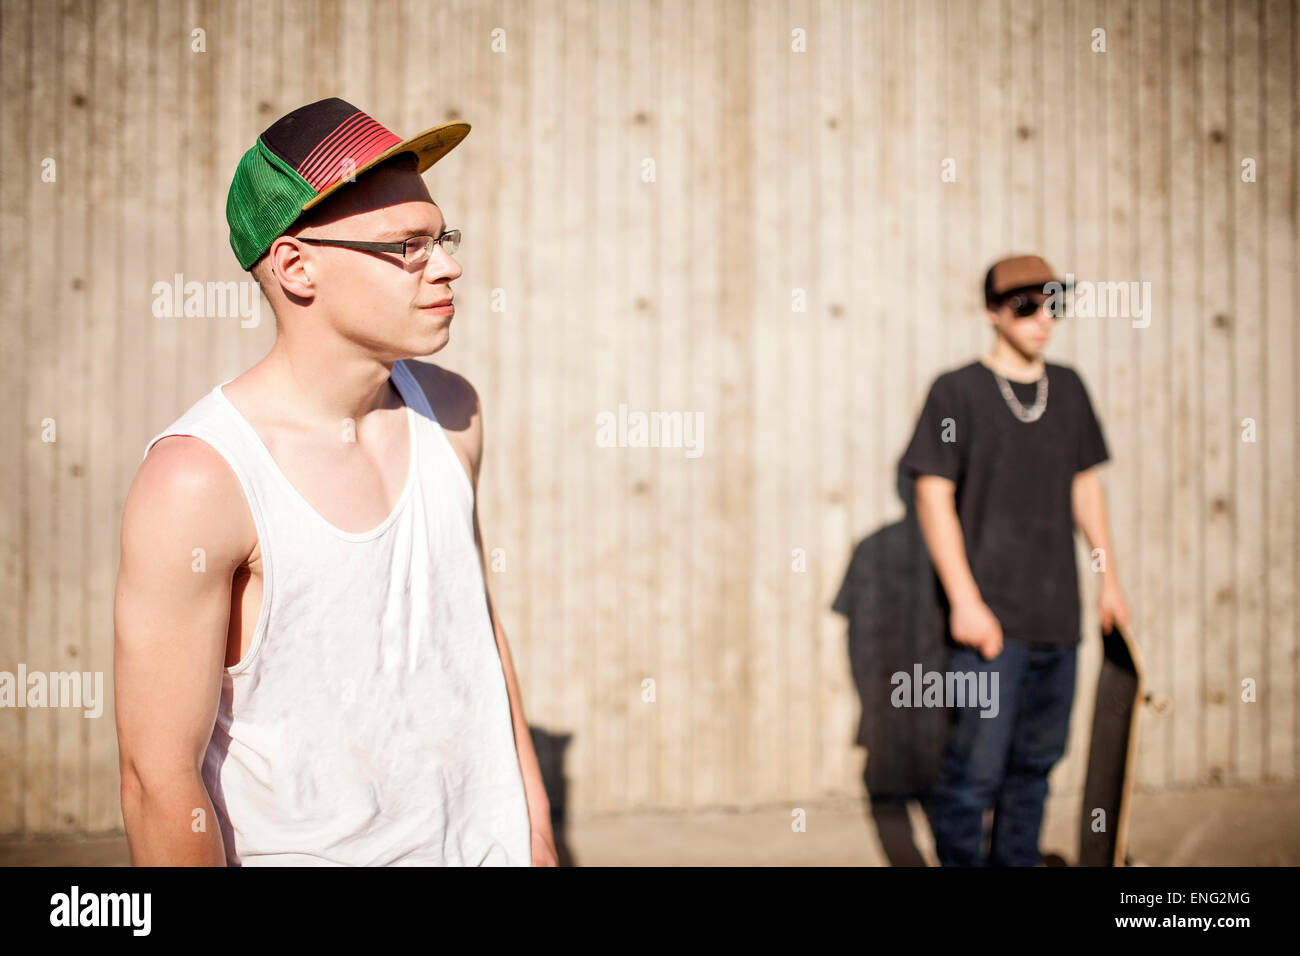 Caucasian men with skateboards near wooden wall - Stock Image